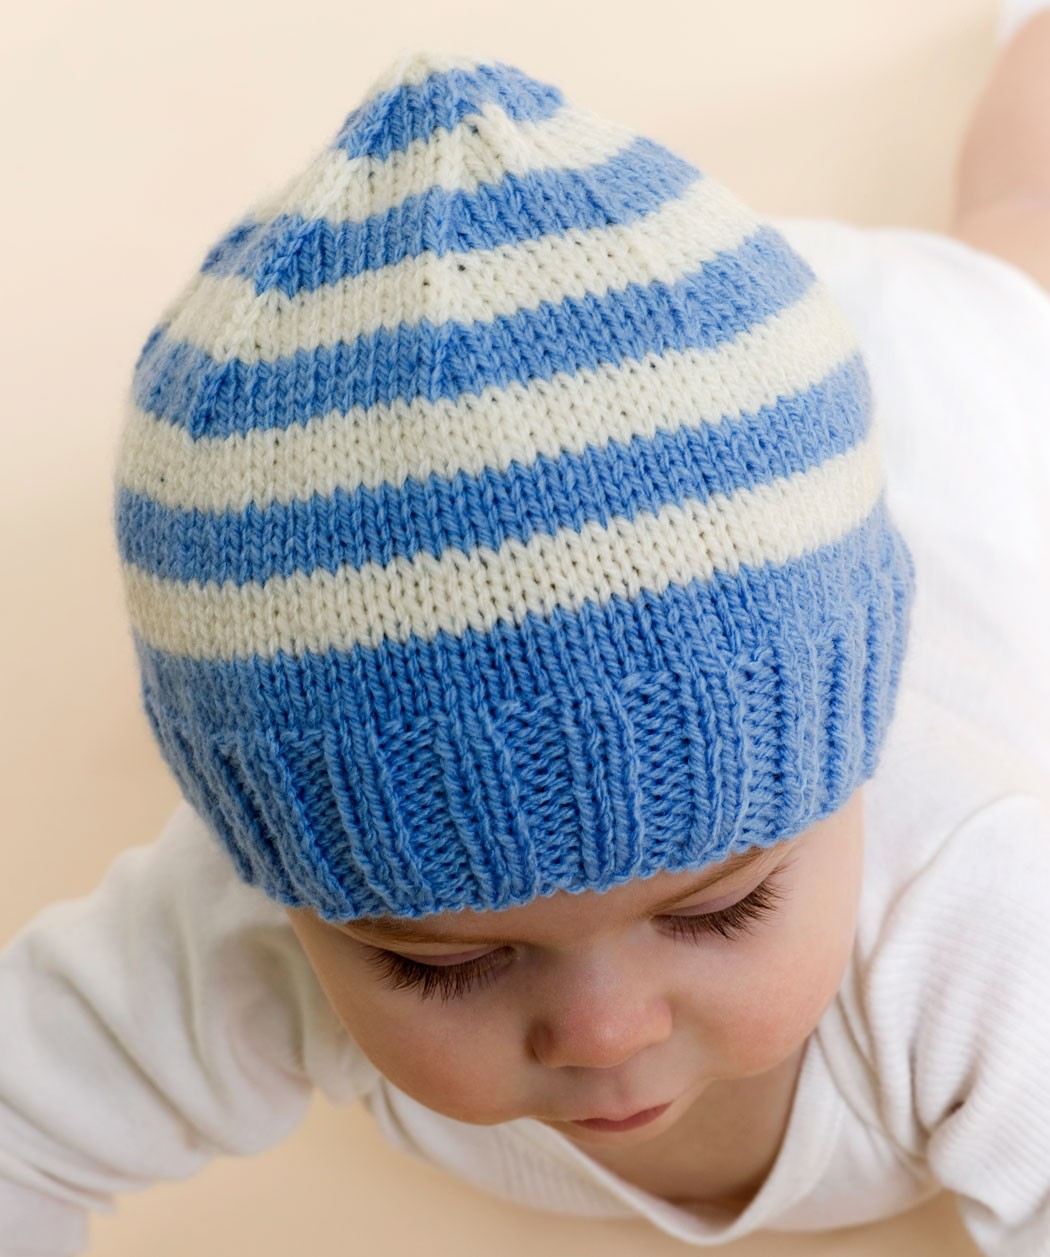 Free Knitting Pattern For Baby Hats : Baby Hat Knitting Pattern